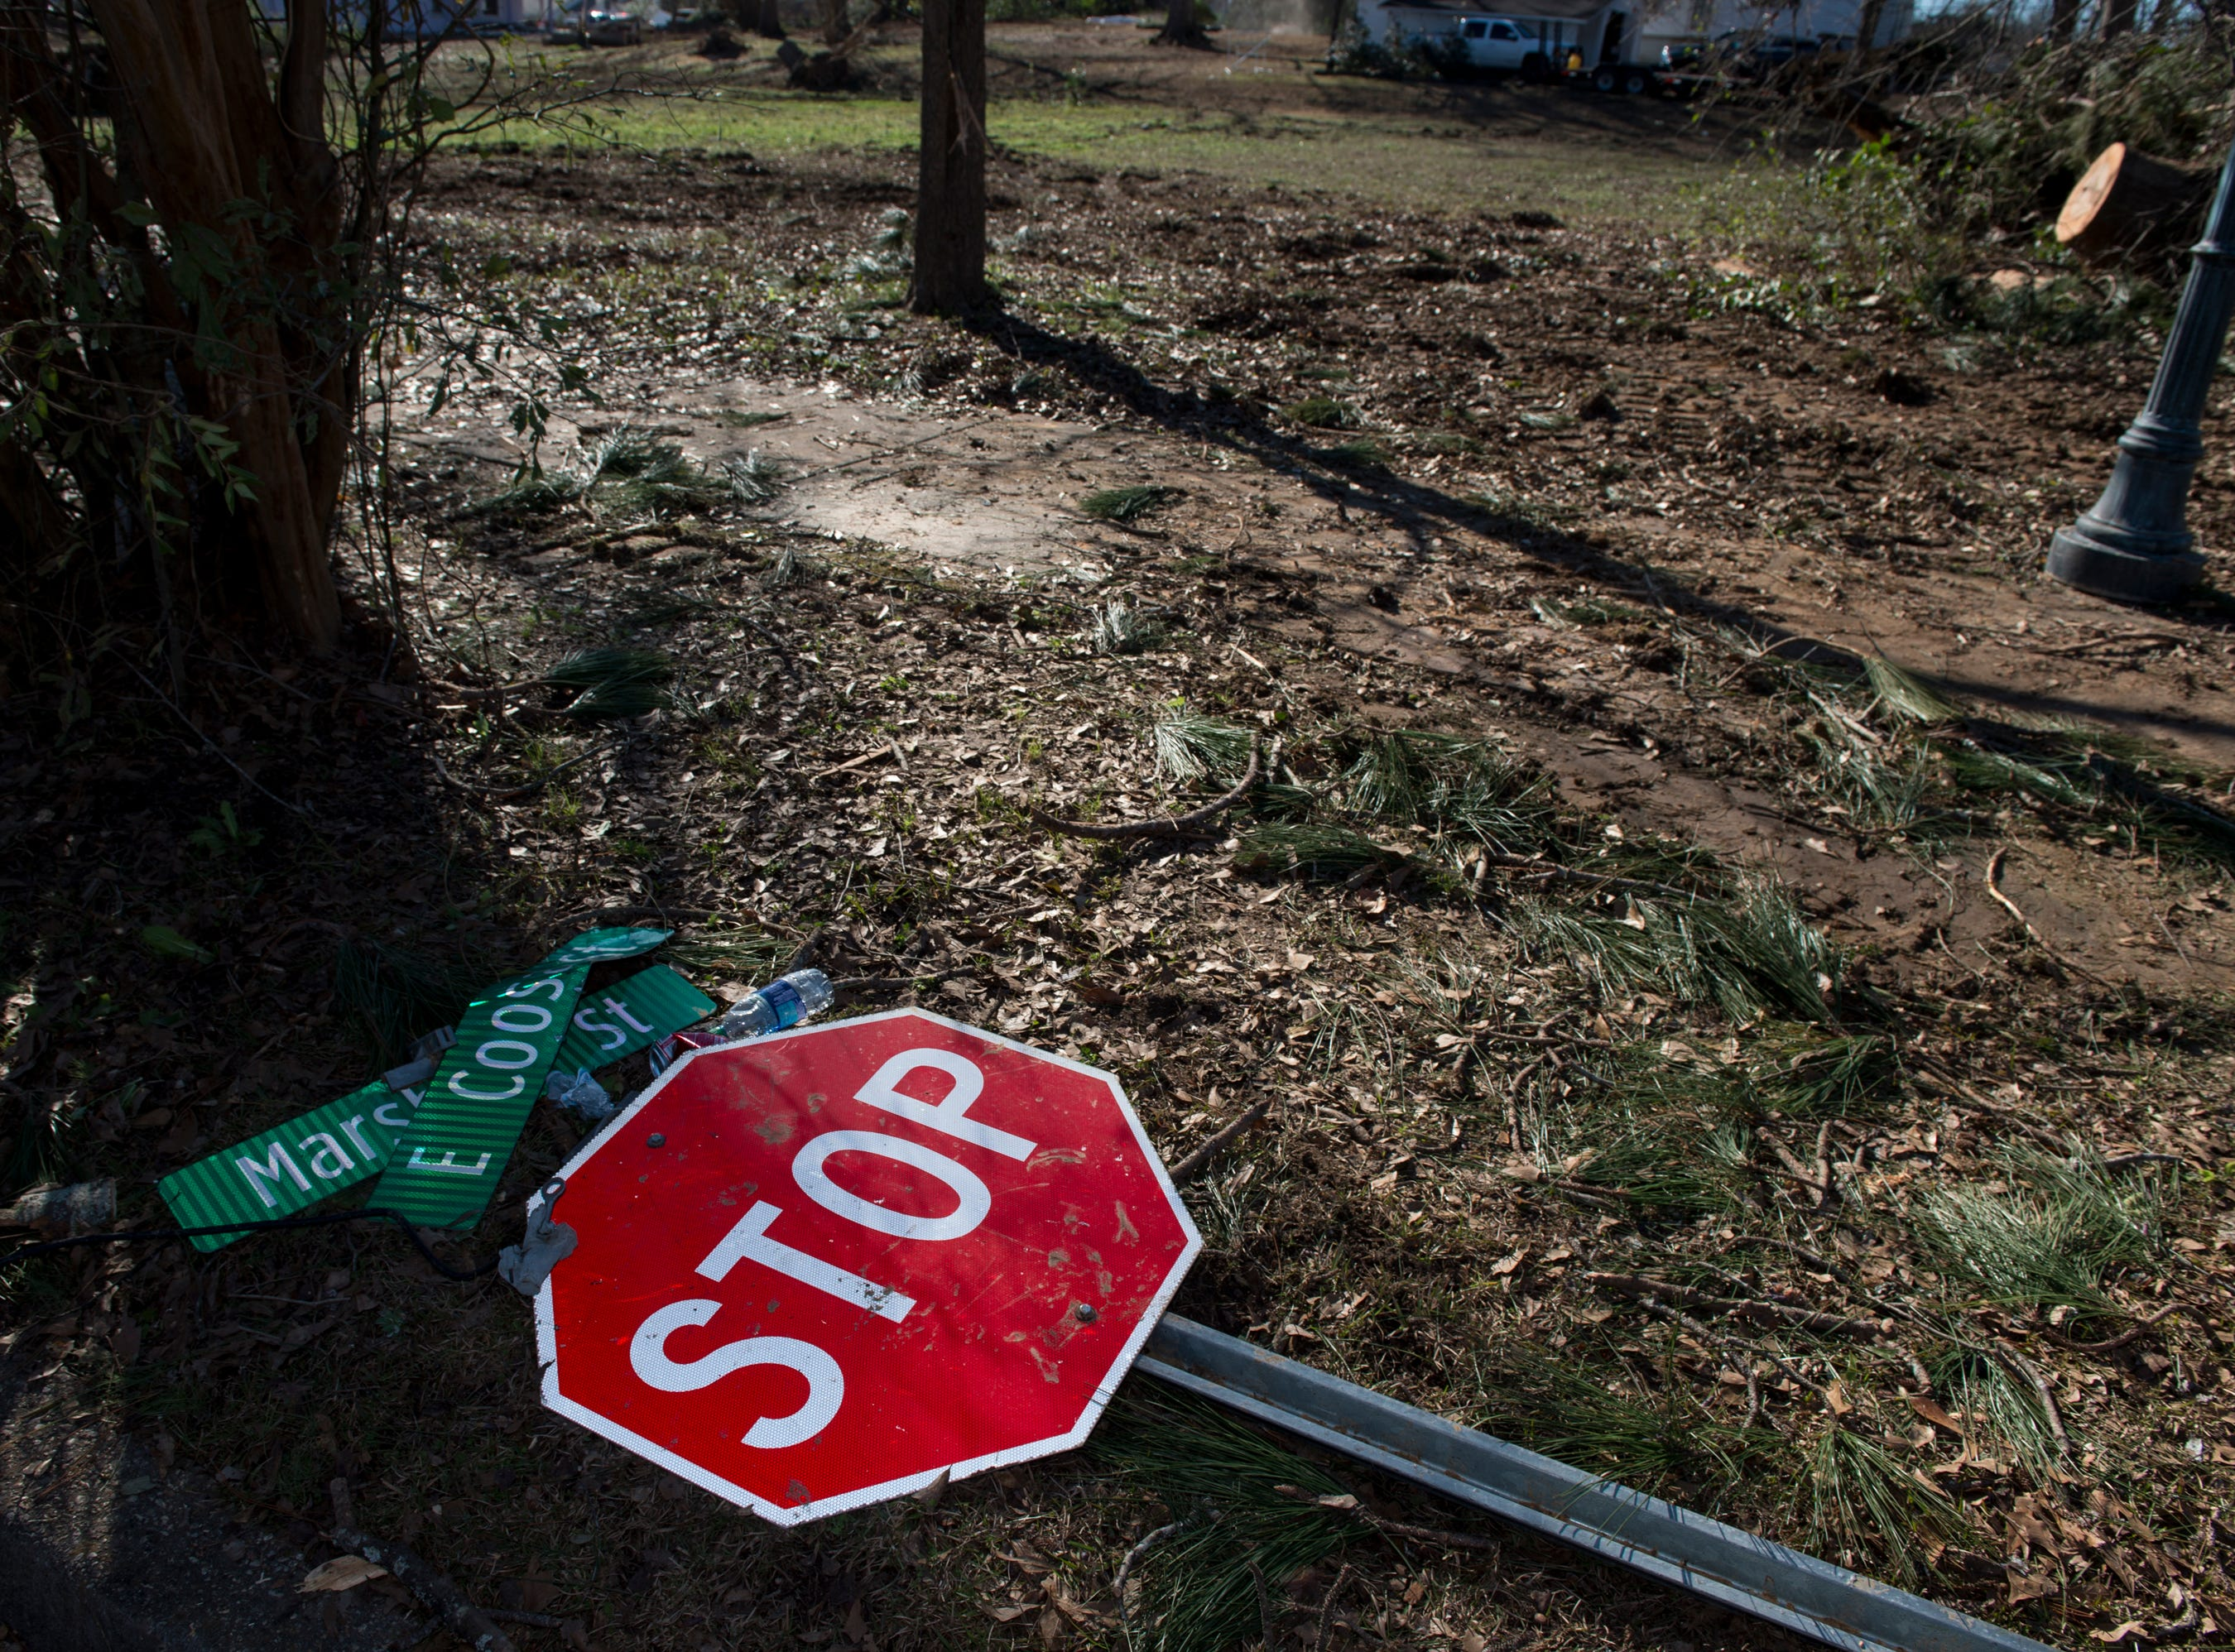 A fallen sign among the tornado damage in Wetumpka, Ala., on Monday, Jan. 21, 2019.